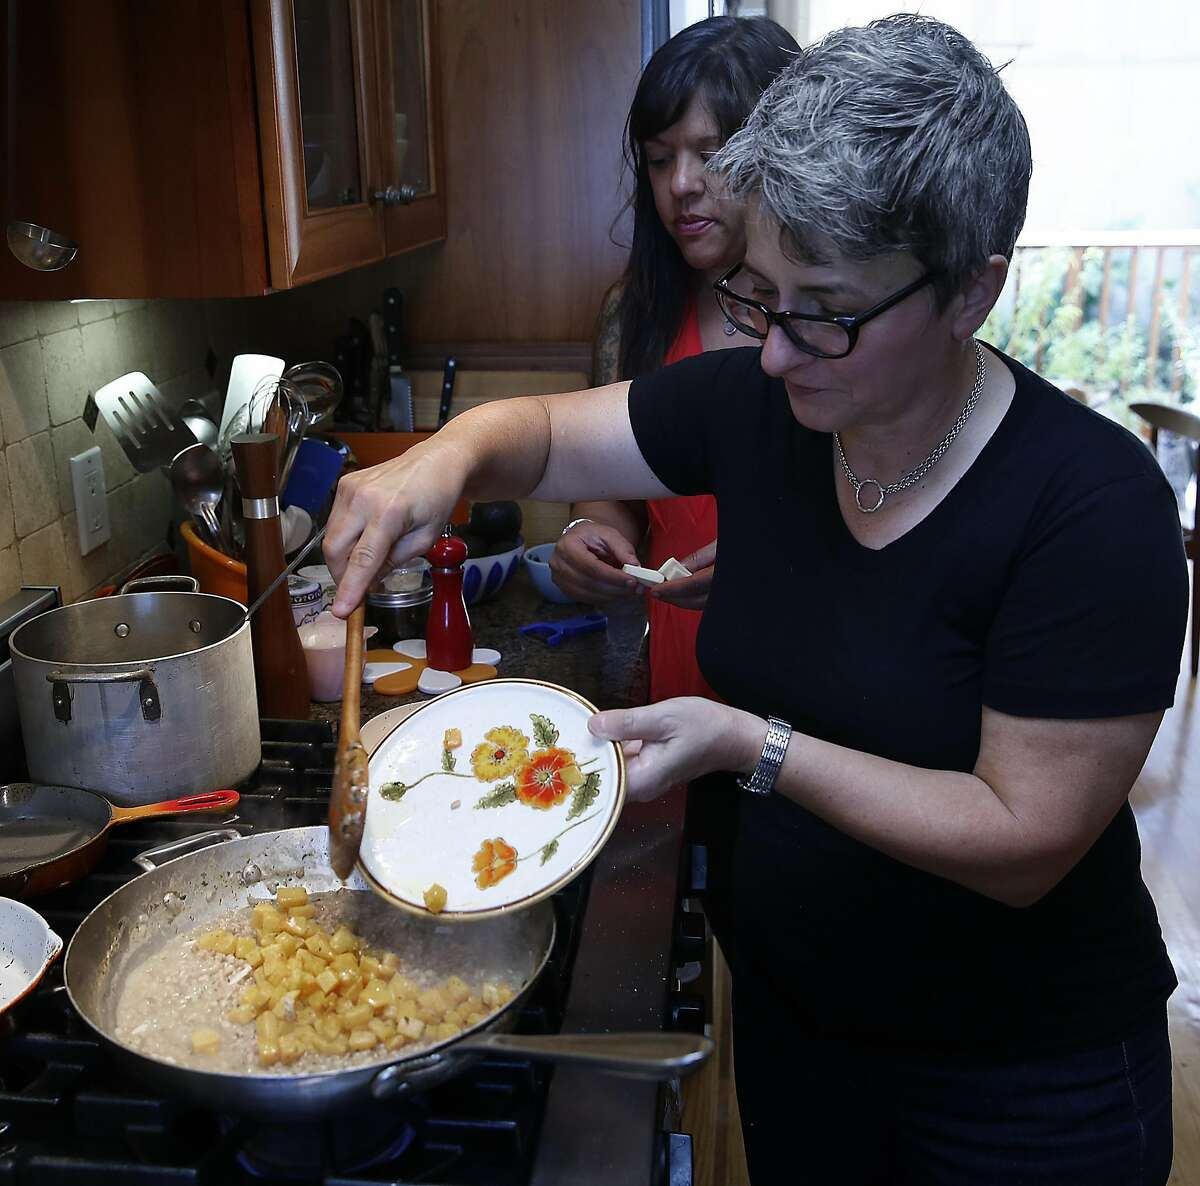 Chef Sharon Ardiana adds squash to make farrotto at home in San Francisco, Calif., on Tuesday, September 29, 2015.